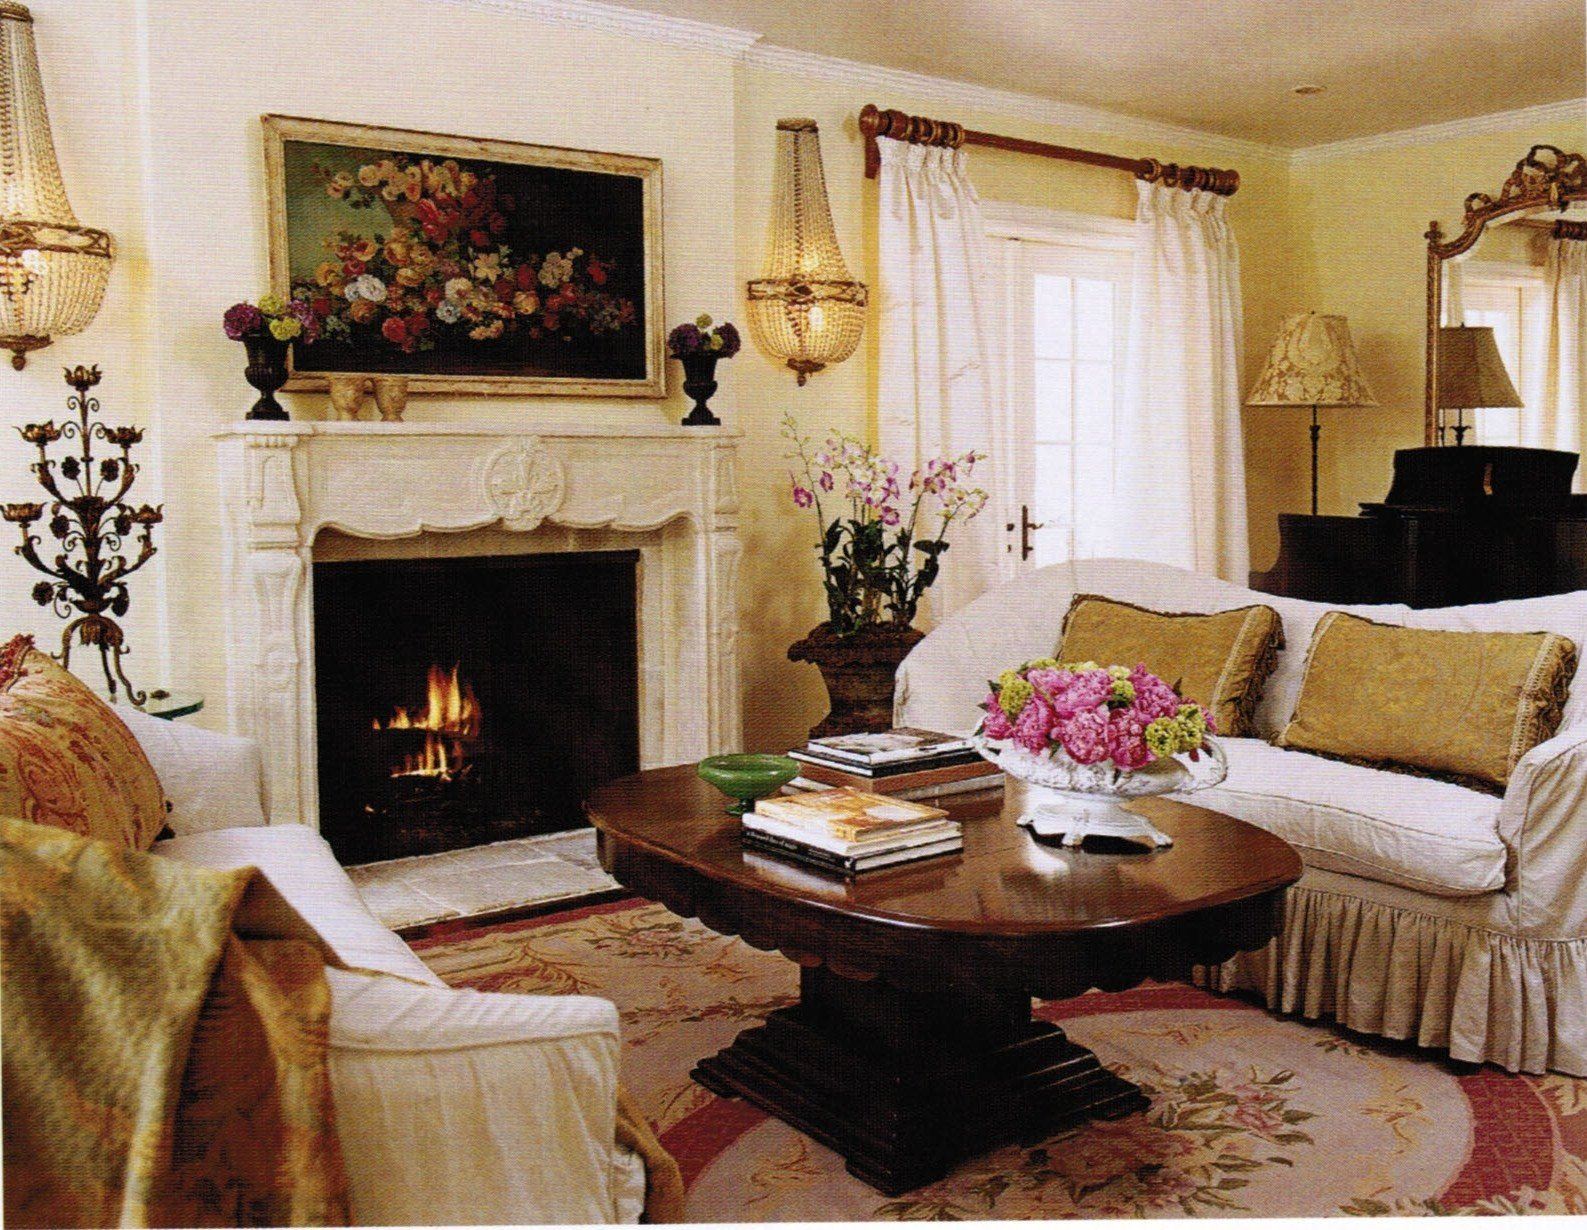 French Country Living Room Decor Unique Maison Decor French Country Enchanting Yellow & White